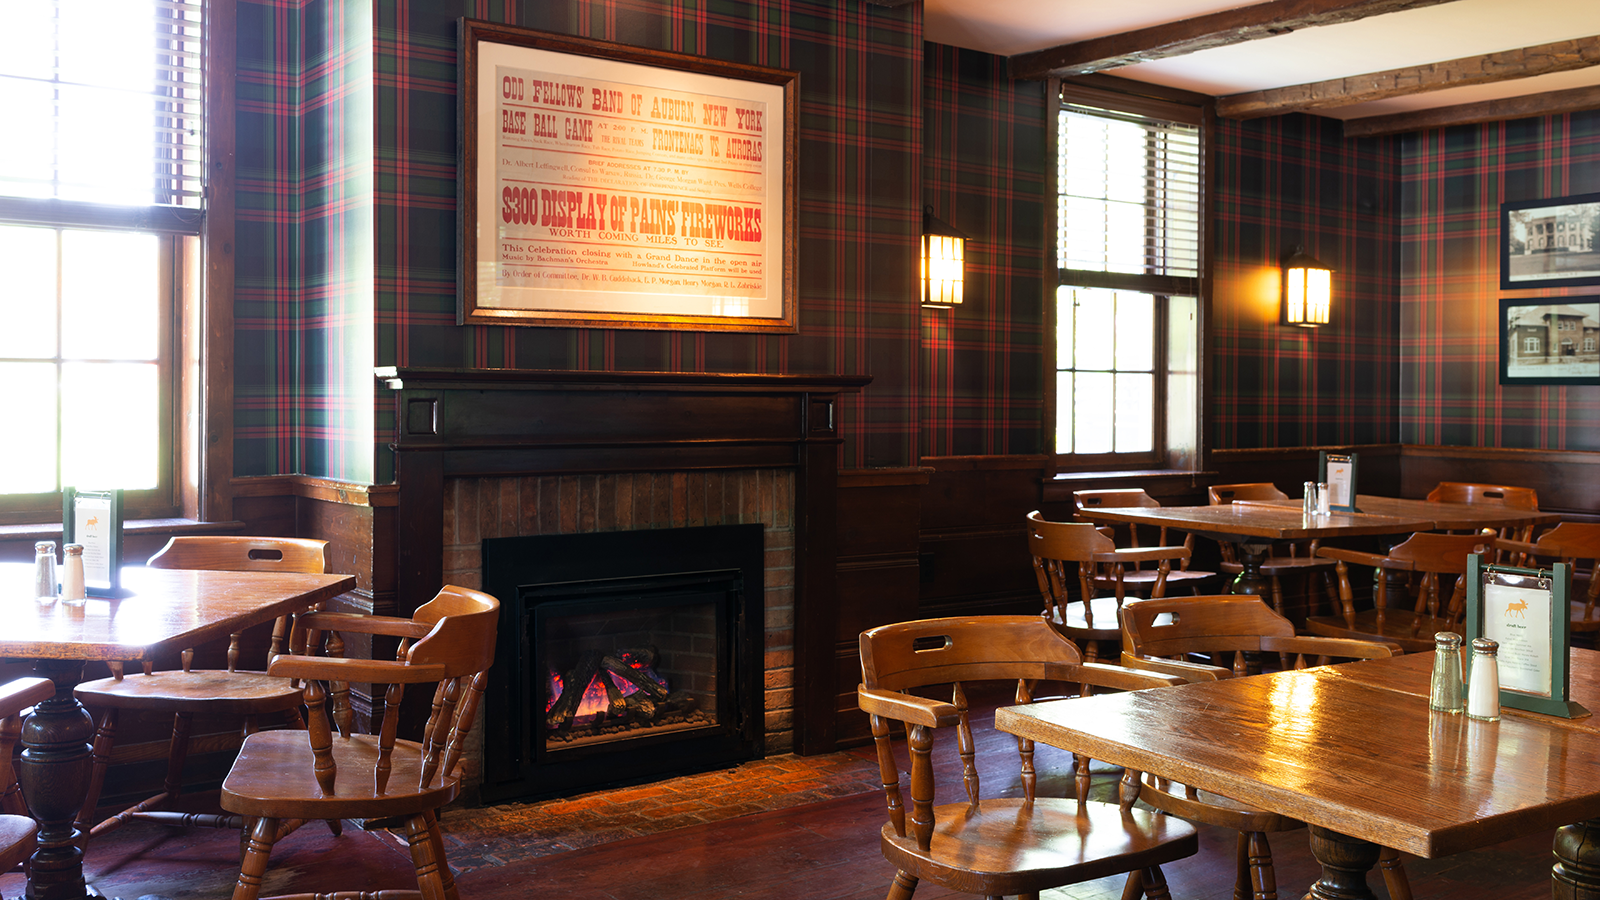 Image of Fargo Bar & Grill Dining Room at the Inns of Aurora in Aurora, New York